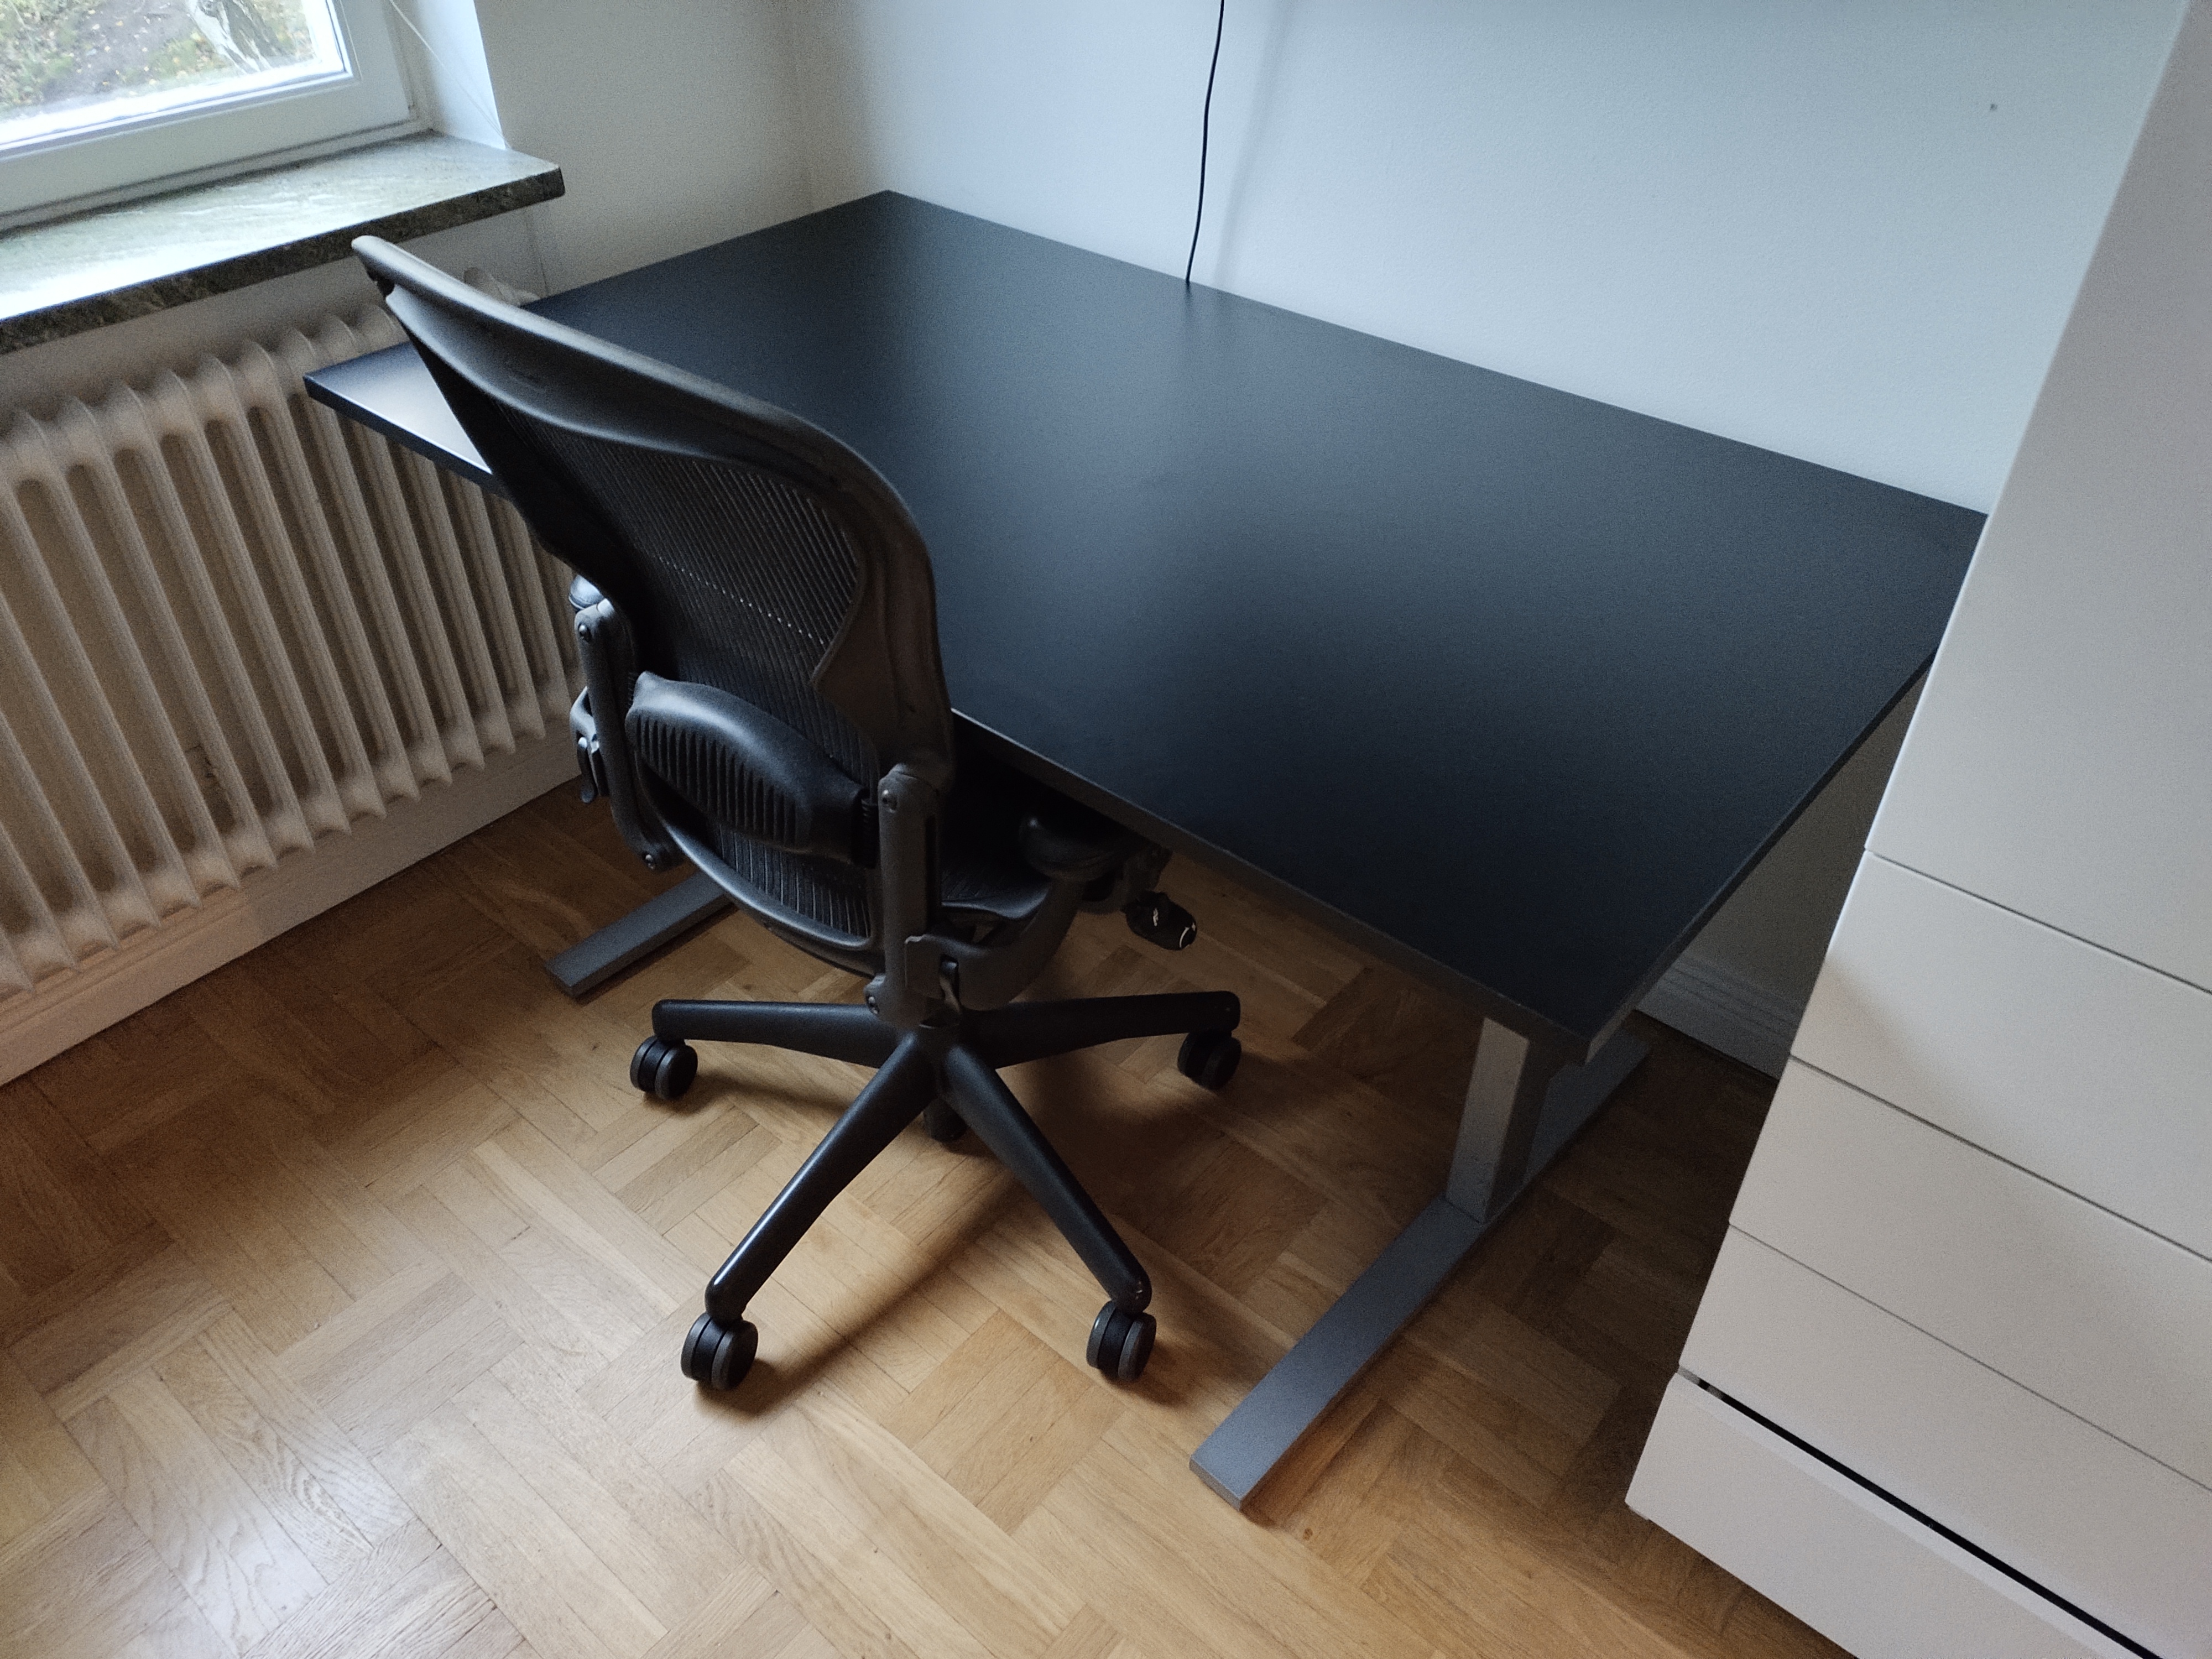 Fixed Desk With Black Table Top 140 X 80 Cm